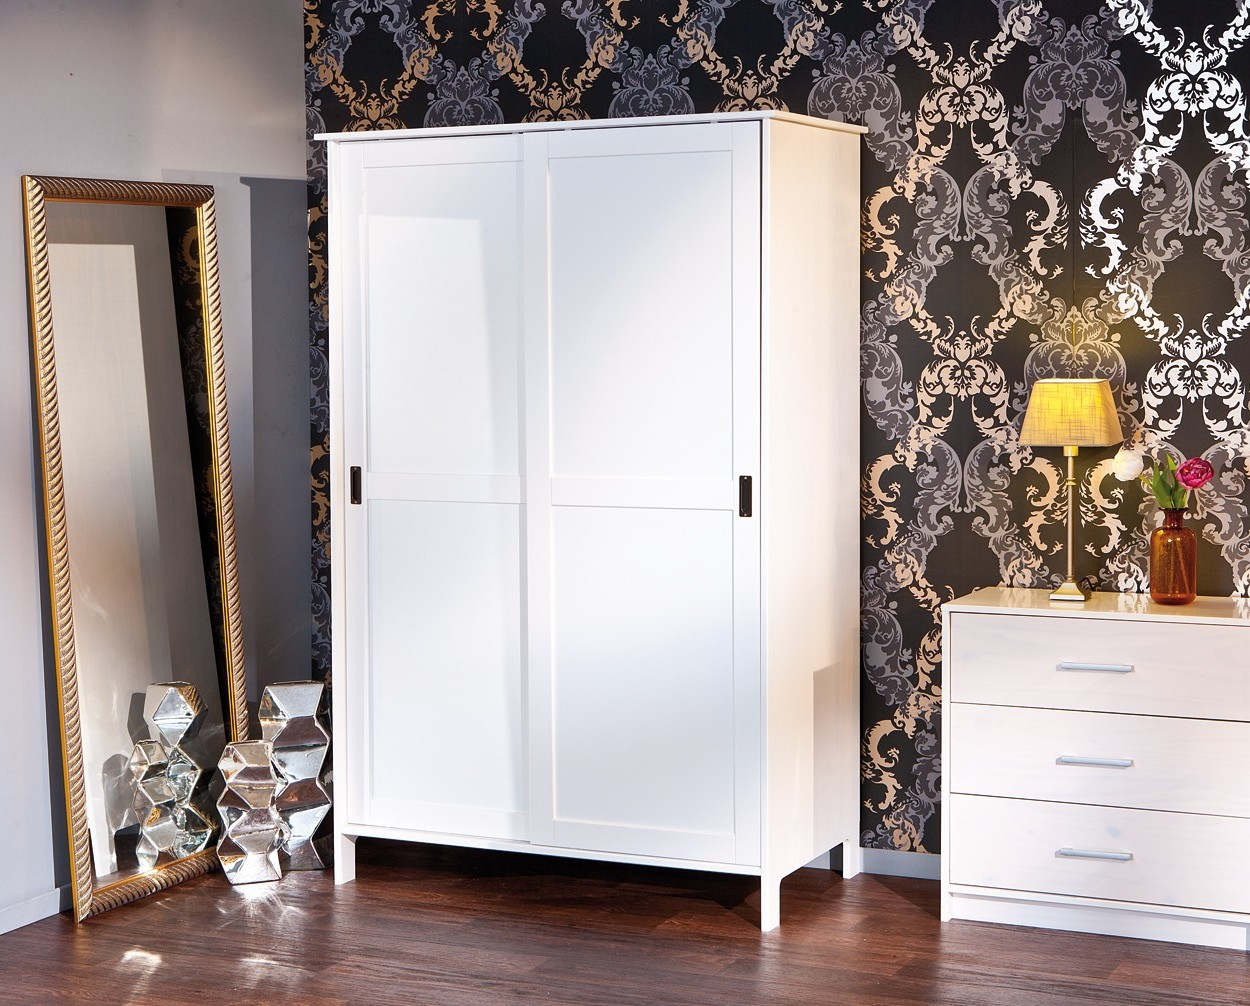 armoire blanche 2 porte coulissante armoire id es de d coration de maison dzn50mlbxz. Black Bedroom Furniture Sets. Home Design Ideas